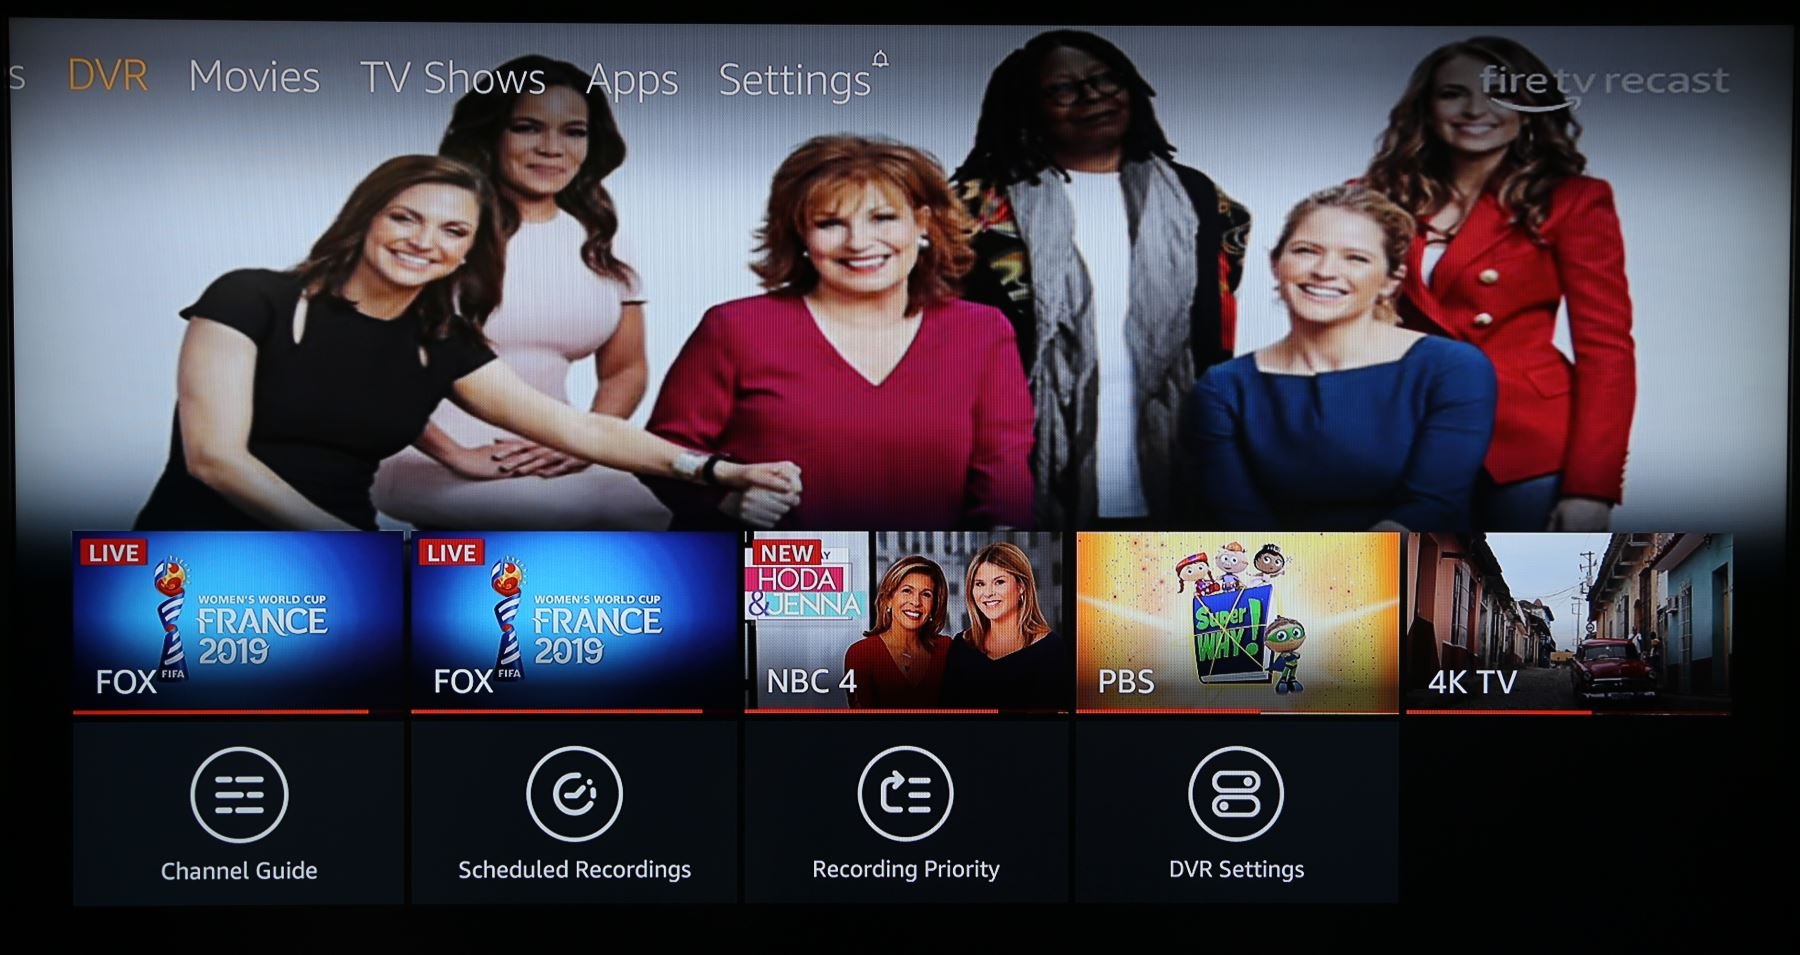 Amazon Fire TV Recast home screen